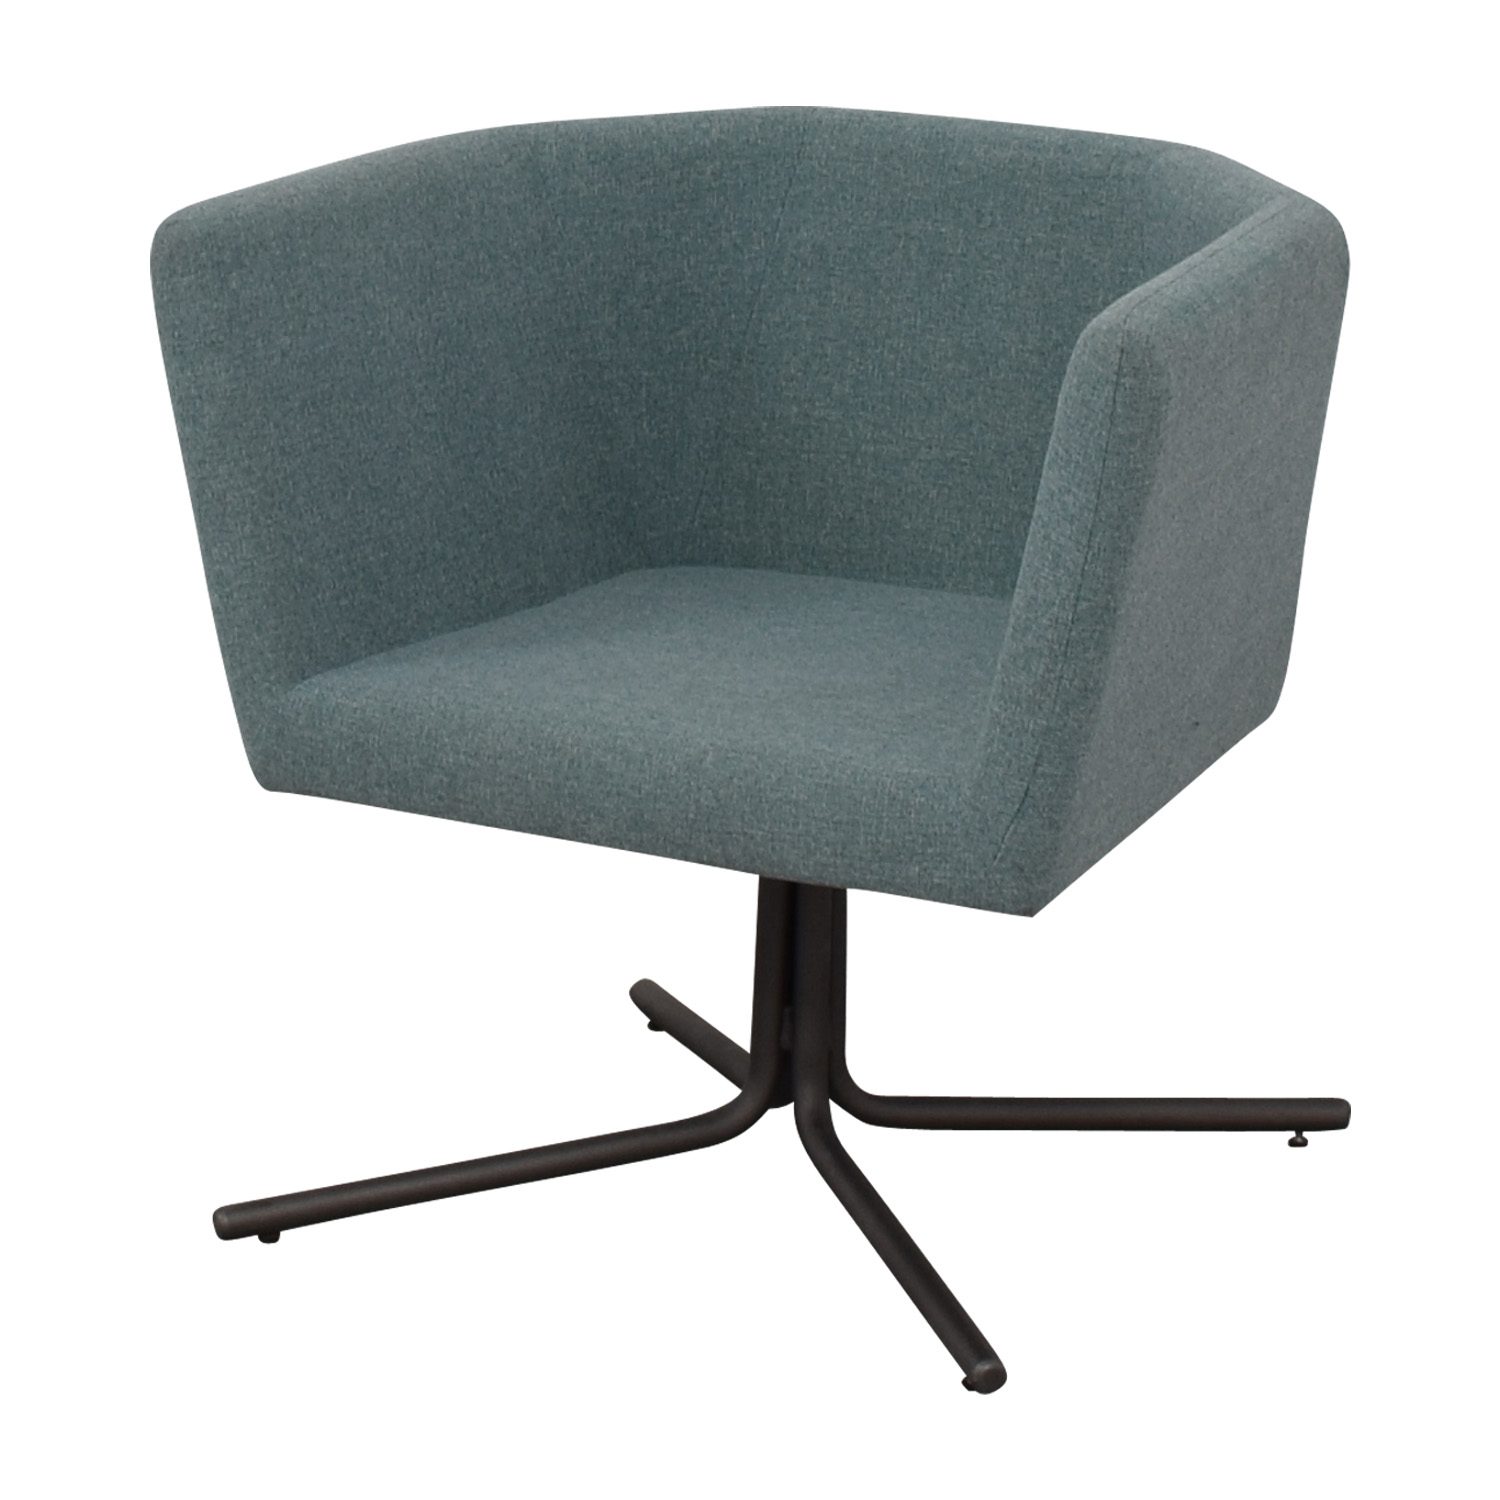 CB2 CB2 Facetta Cyan Chair Accent Chairs